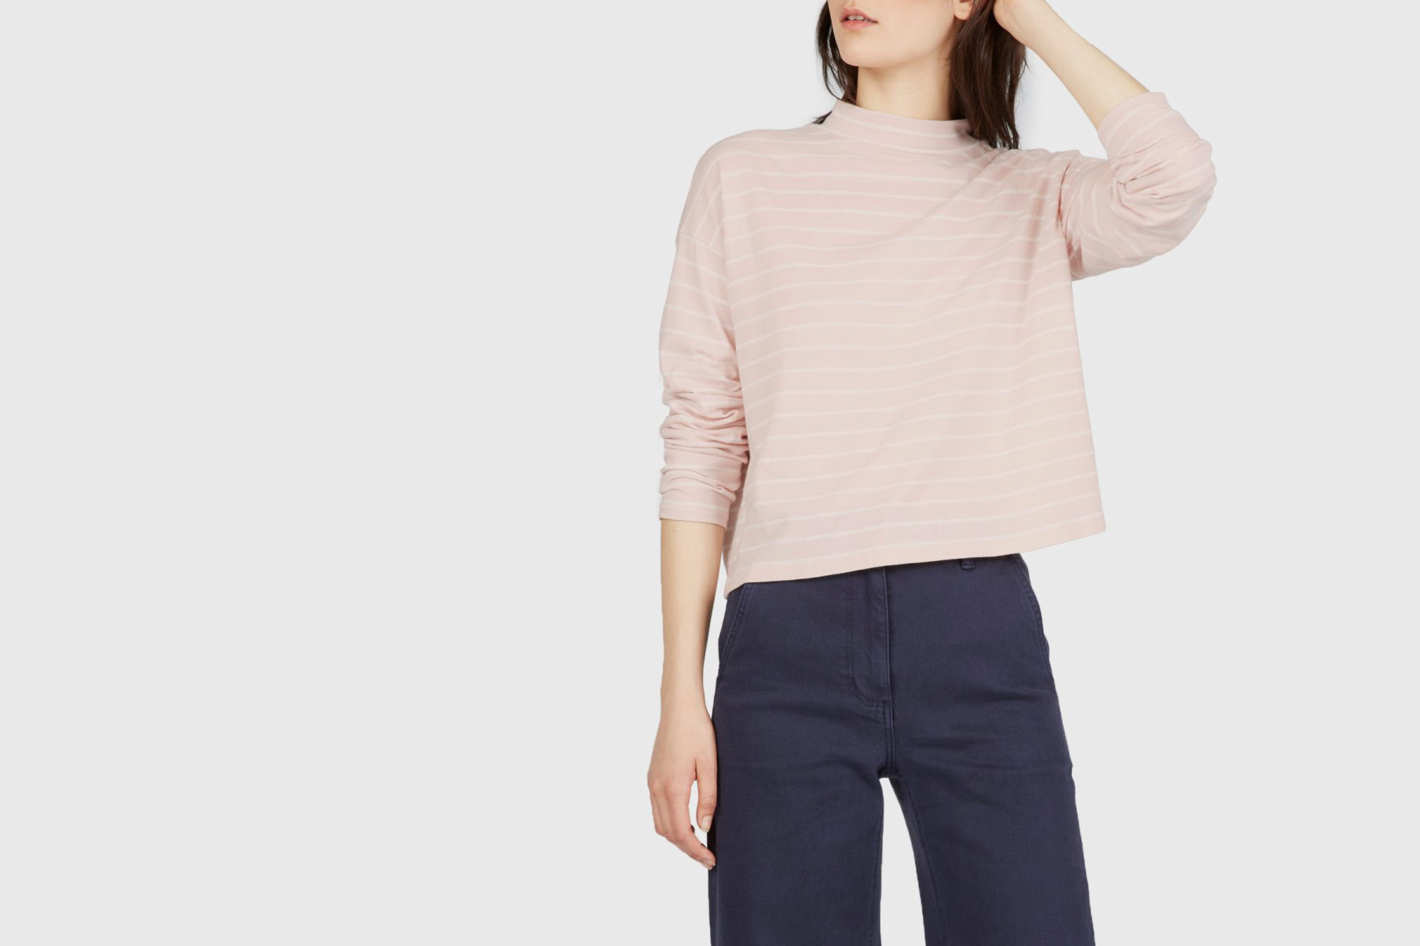 The Square Mockneck Tee